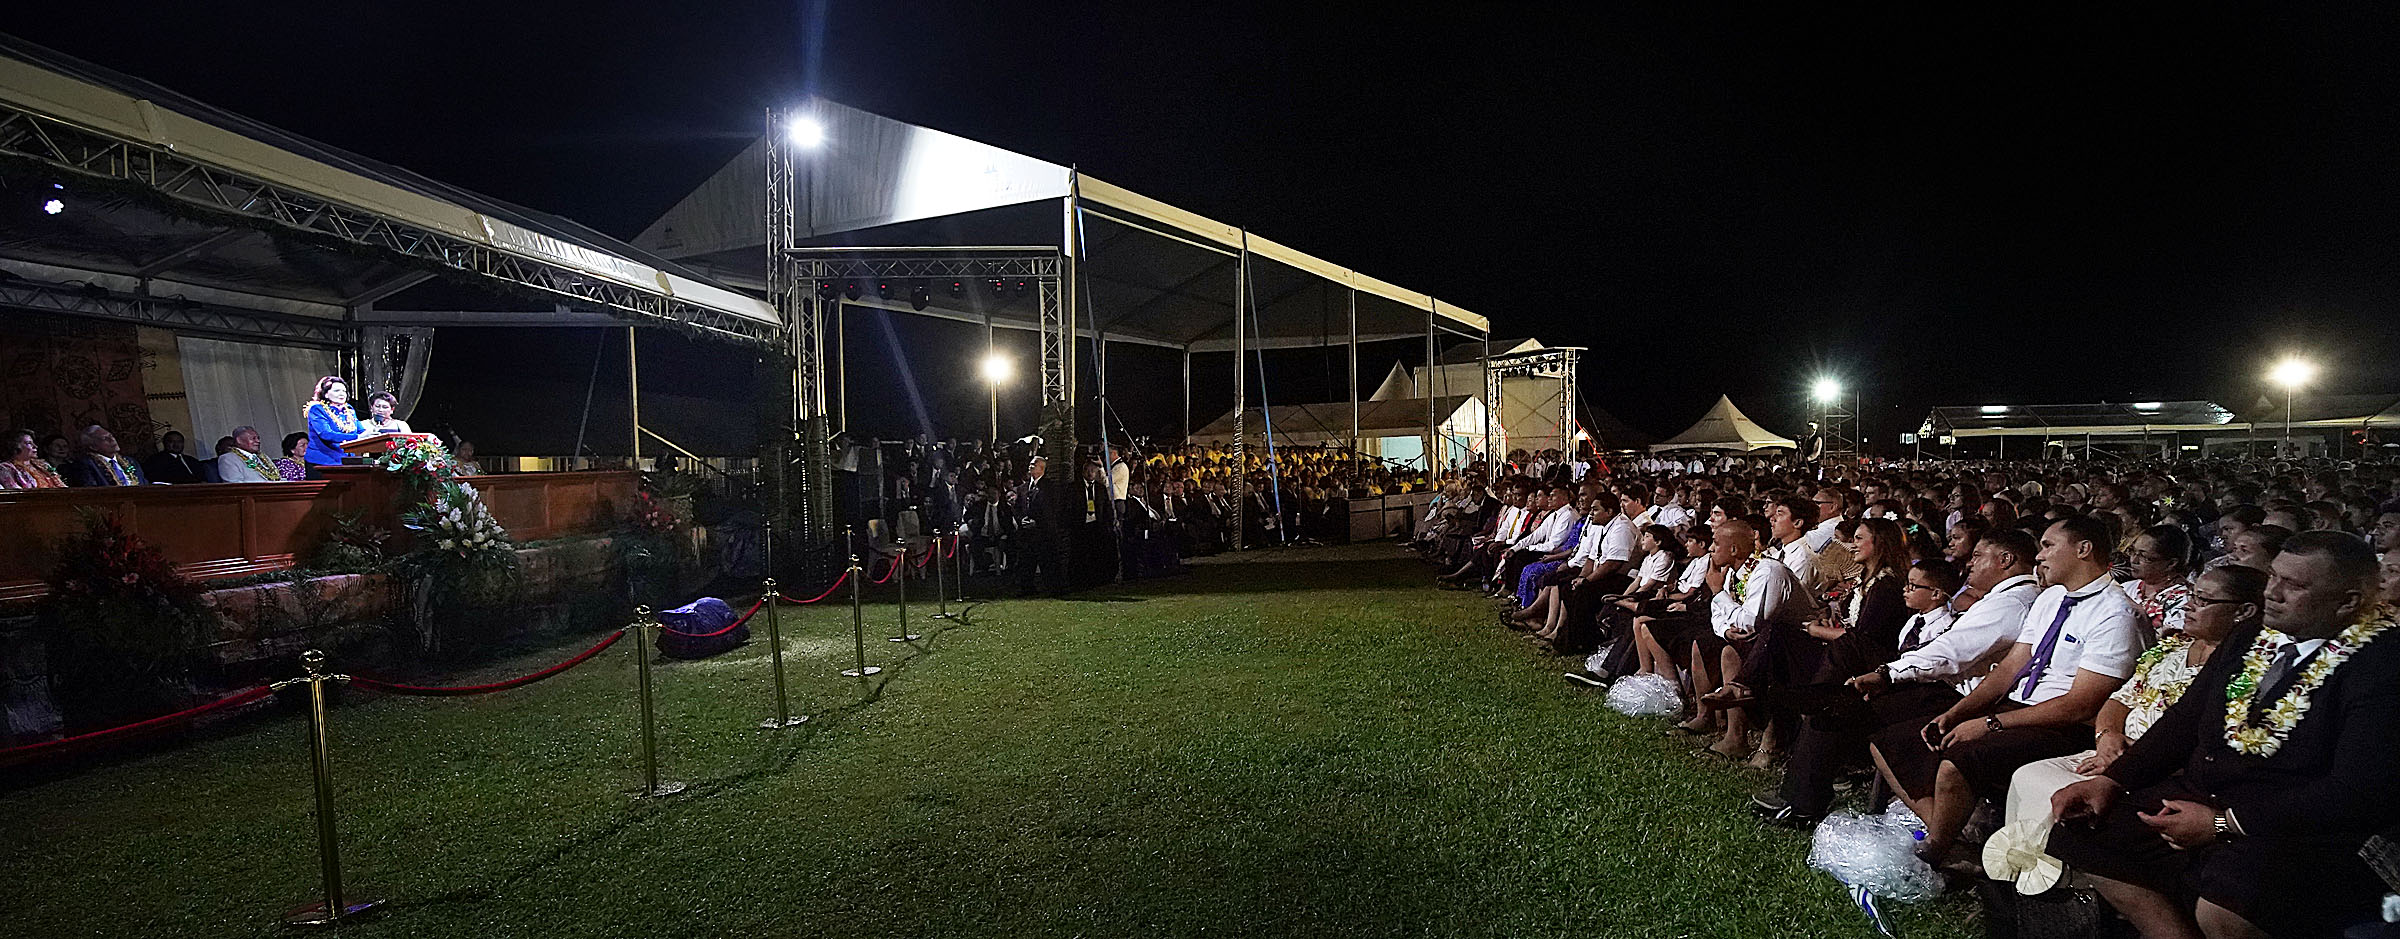 Sister Wendy Nelson, wife of President Russell M. Nelson of The Church of Jesus Christ of Latter-day Saints, speaks during a devotional in Apia, Samoa, on Saturday, May 18, 2019.